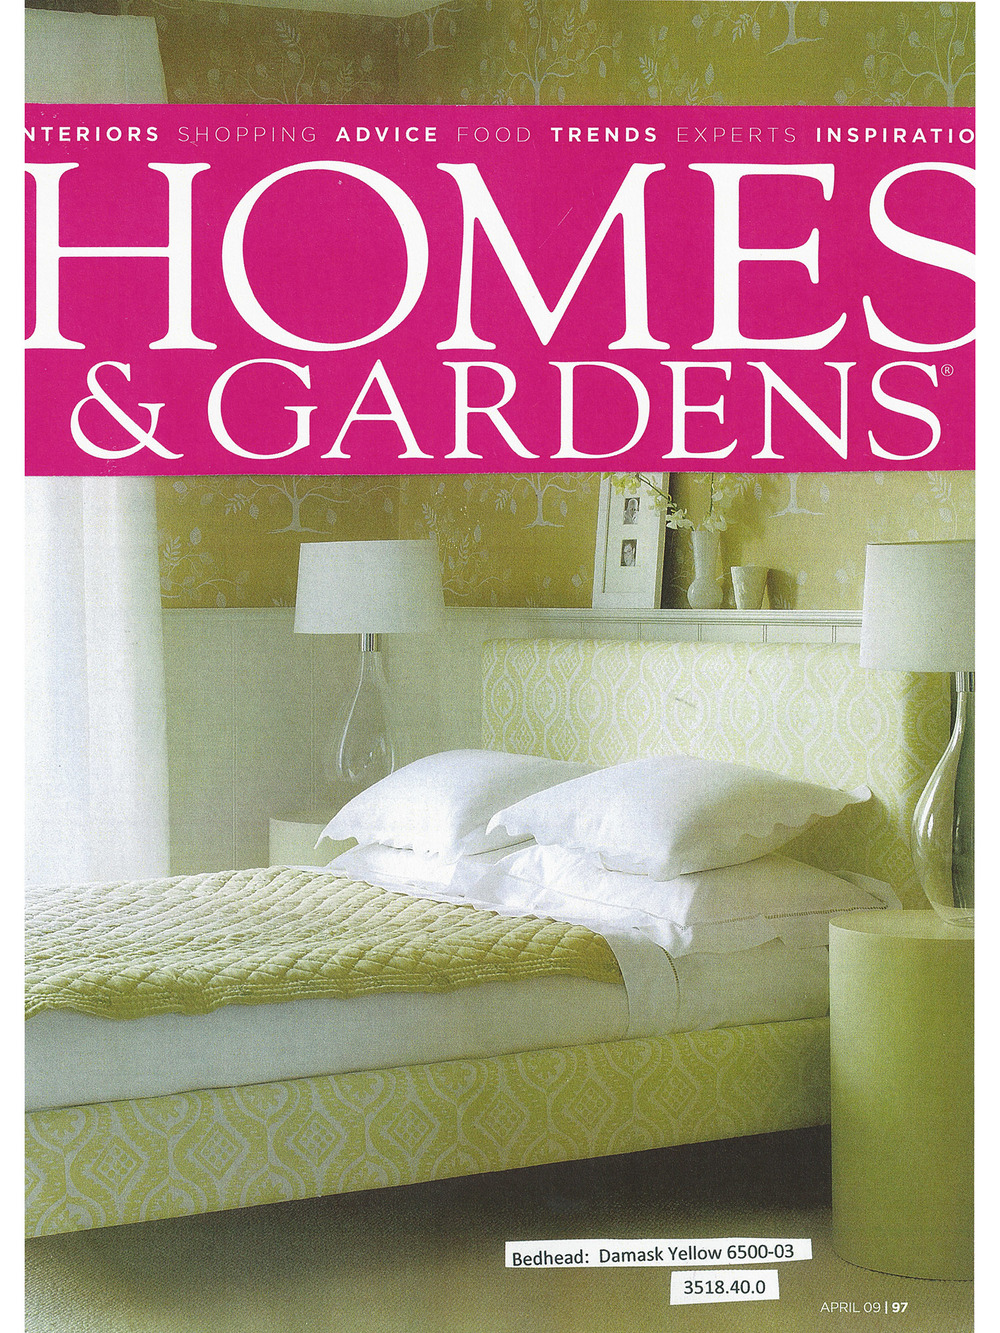 2009 April-Homes & Gardens.jpeg